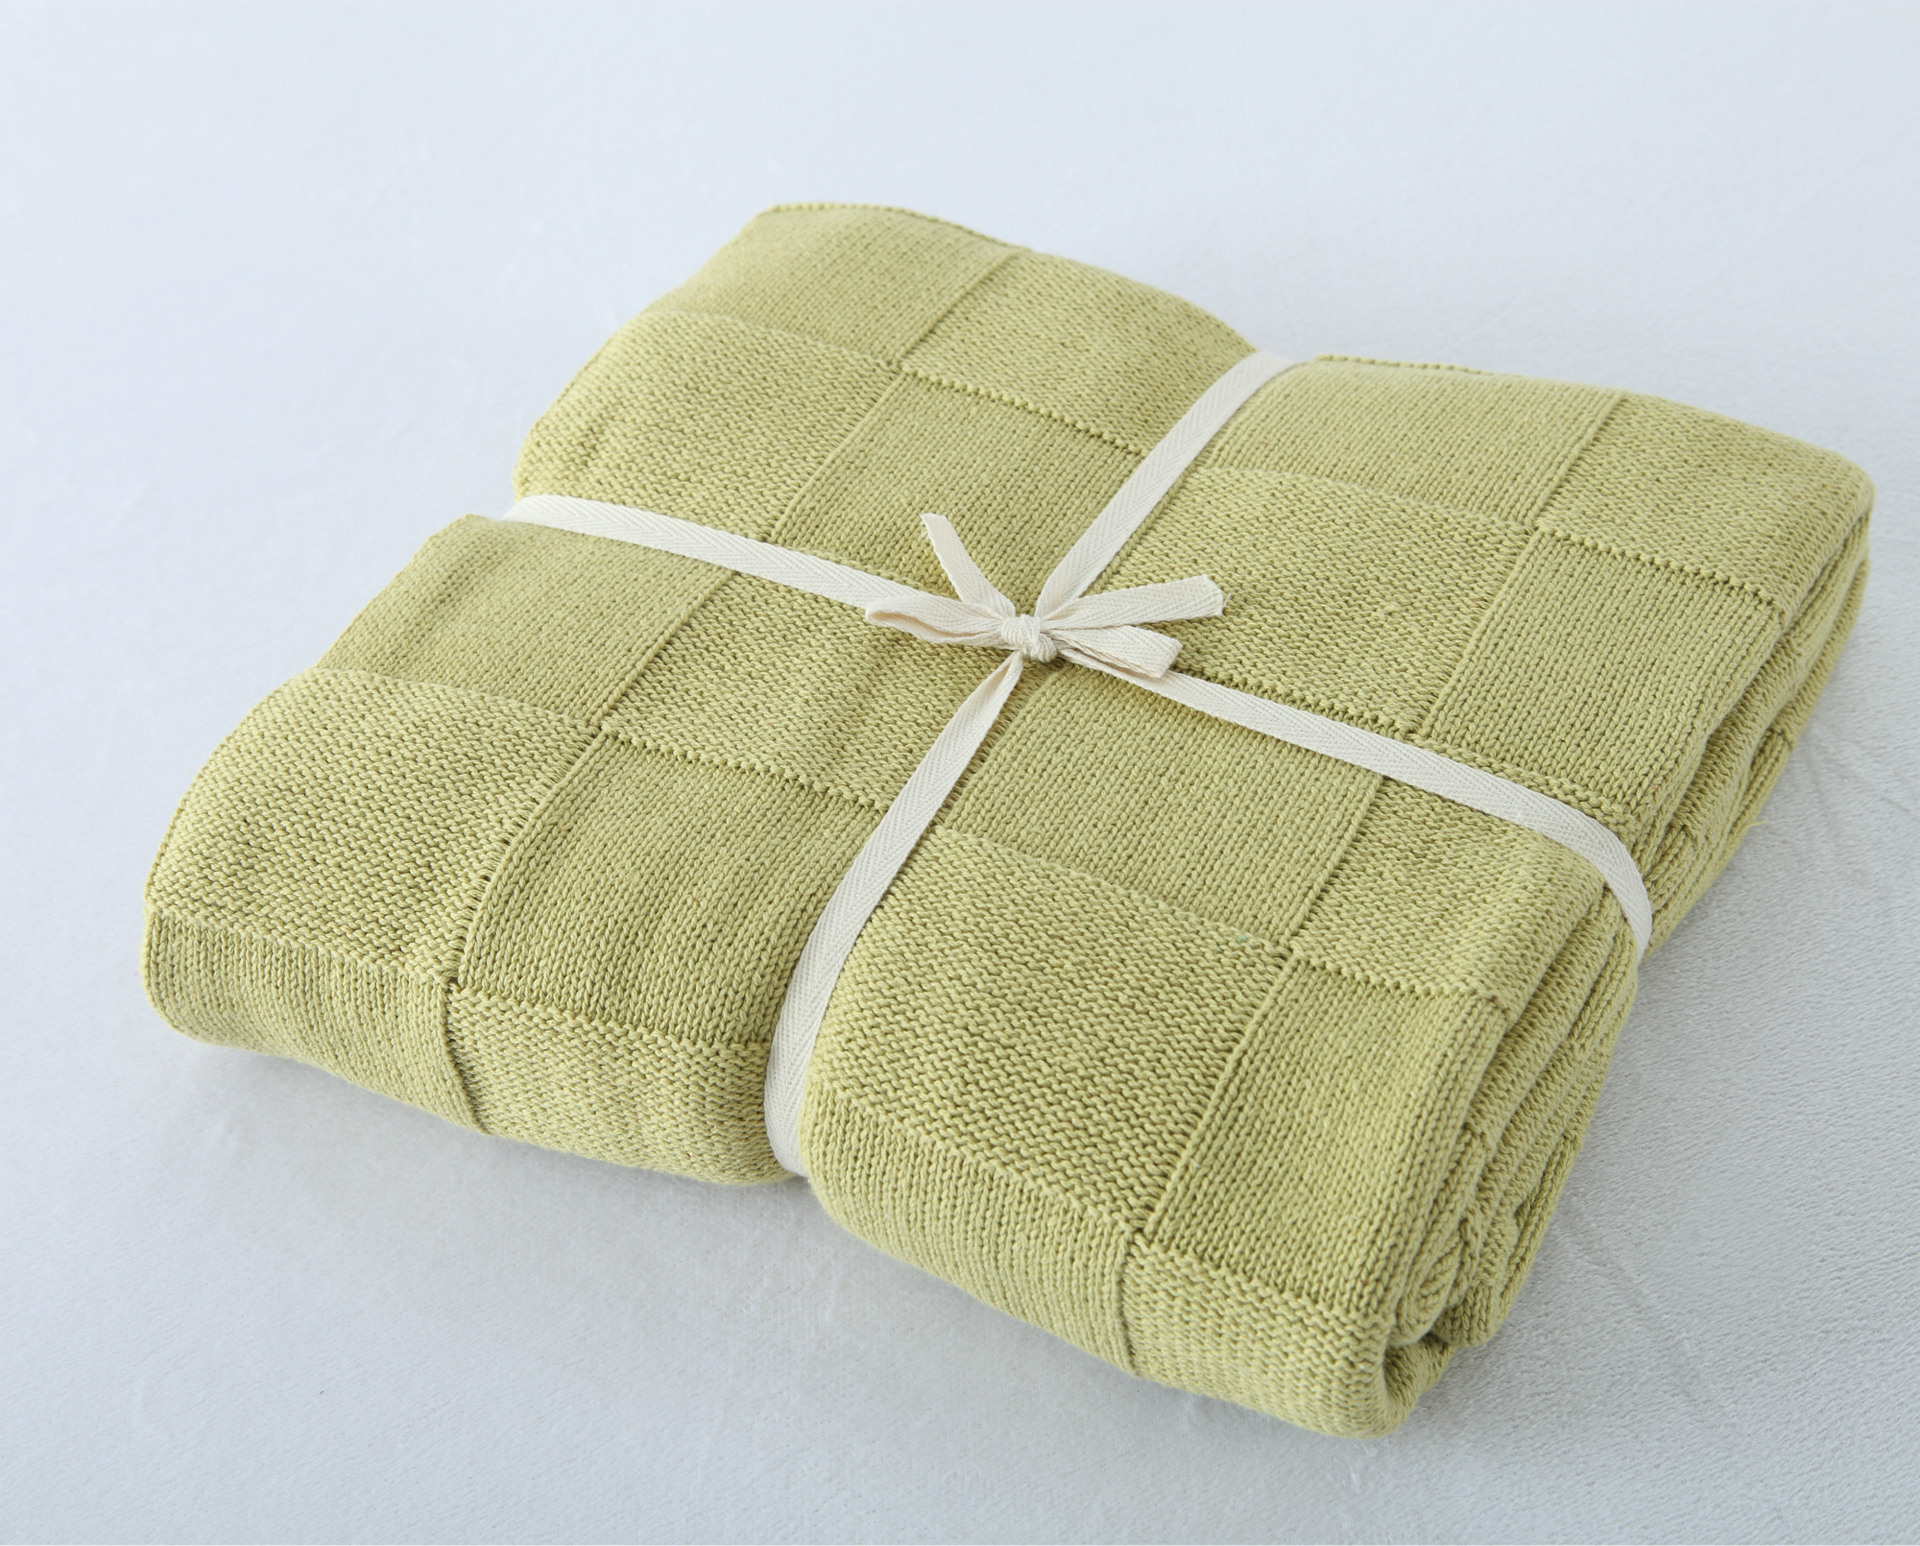 100 cotton green plaid knit blanket for throw blankets on bed cable knitted blanket size 180x200cm free shipping - Cable Knit Throw